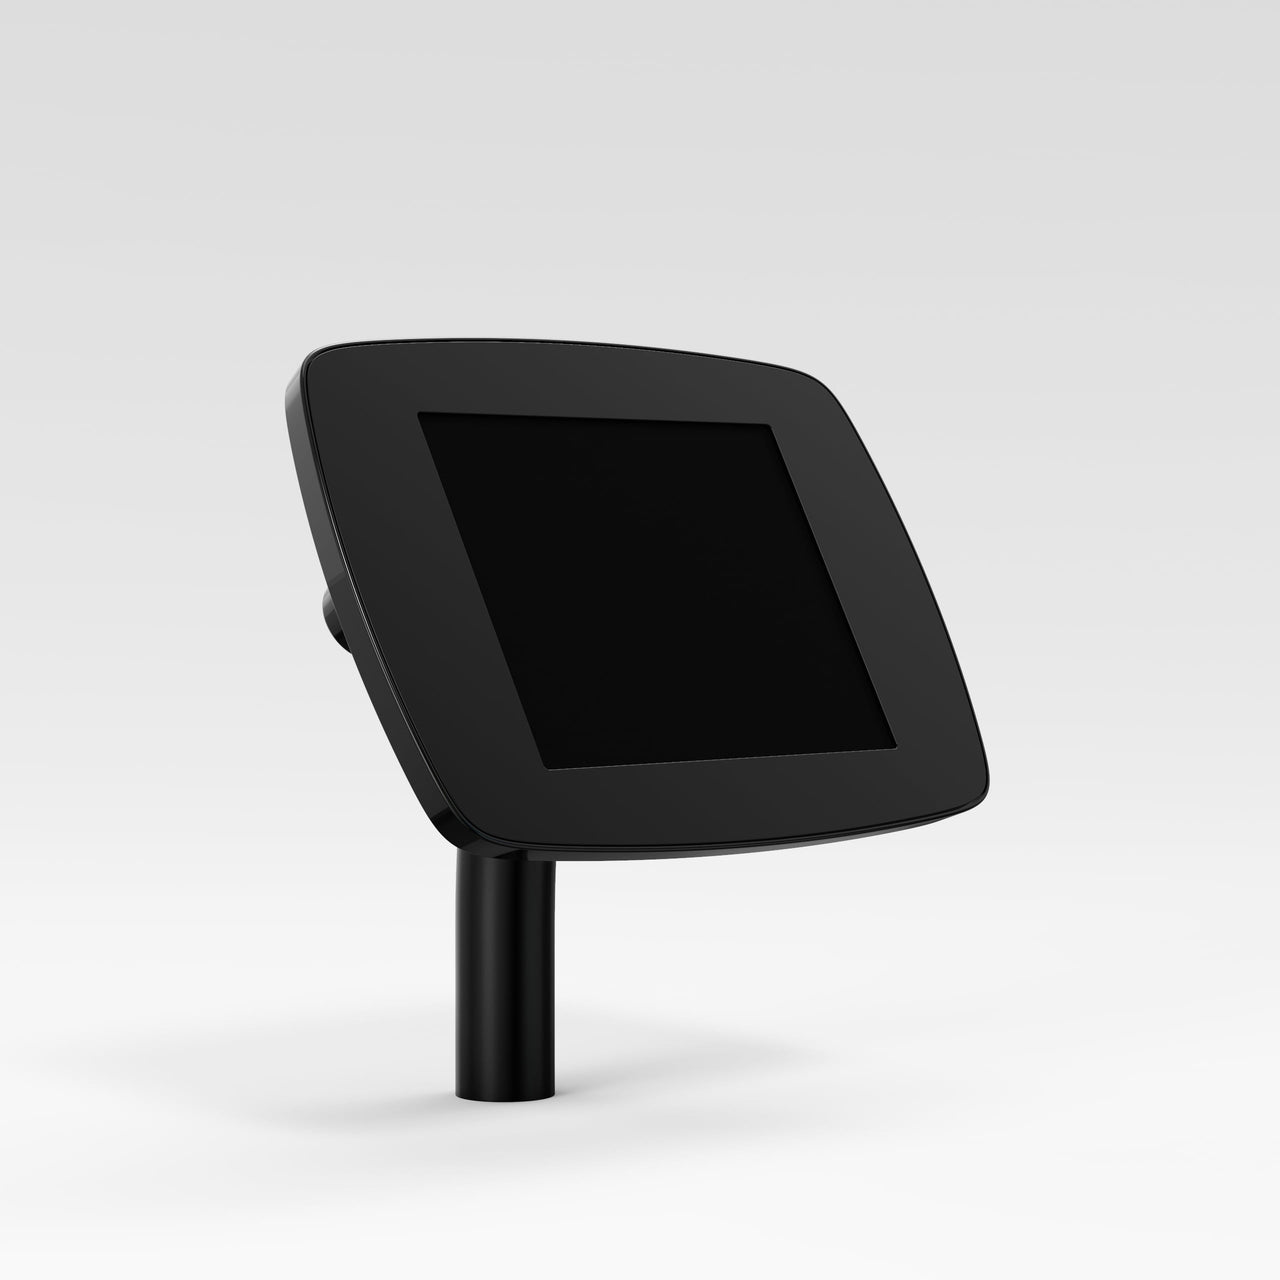 Bouncepad Static 60 - A secure tablet & iPad desk mount in black.